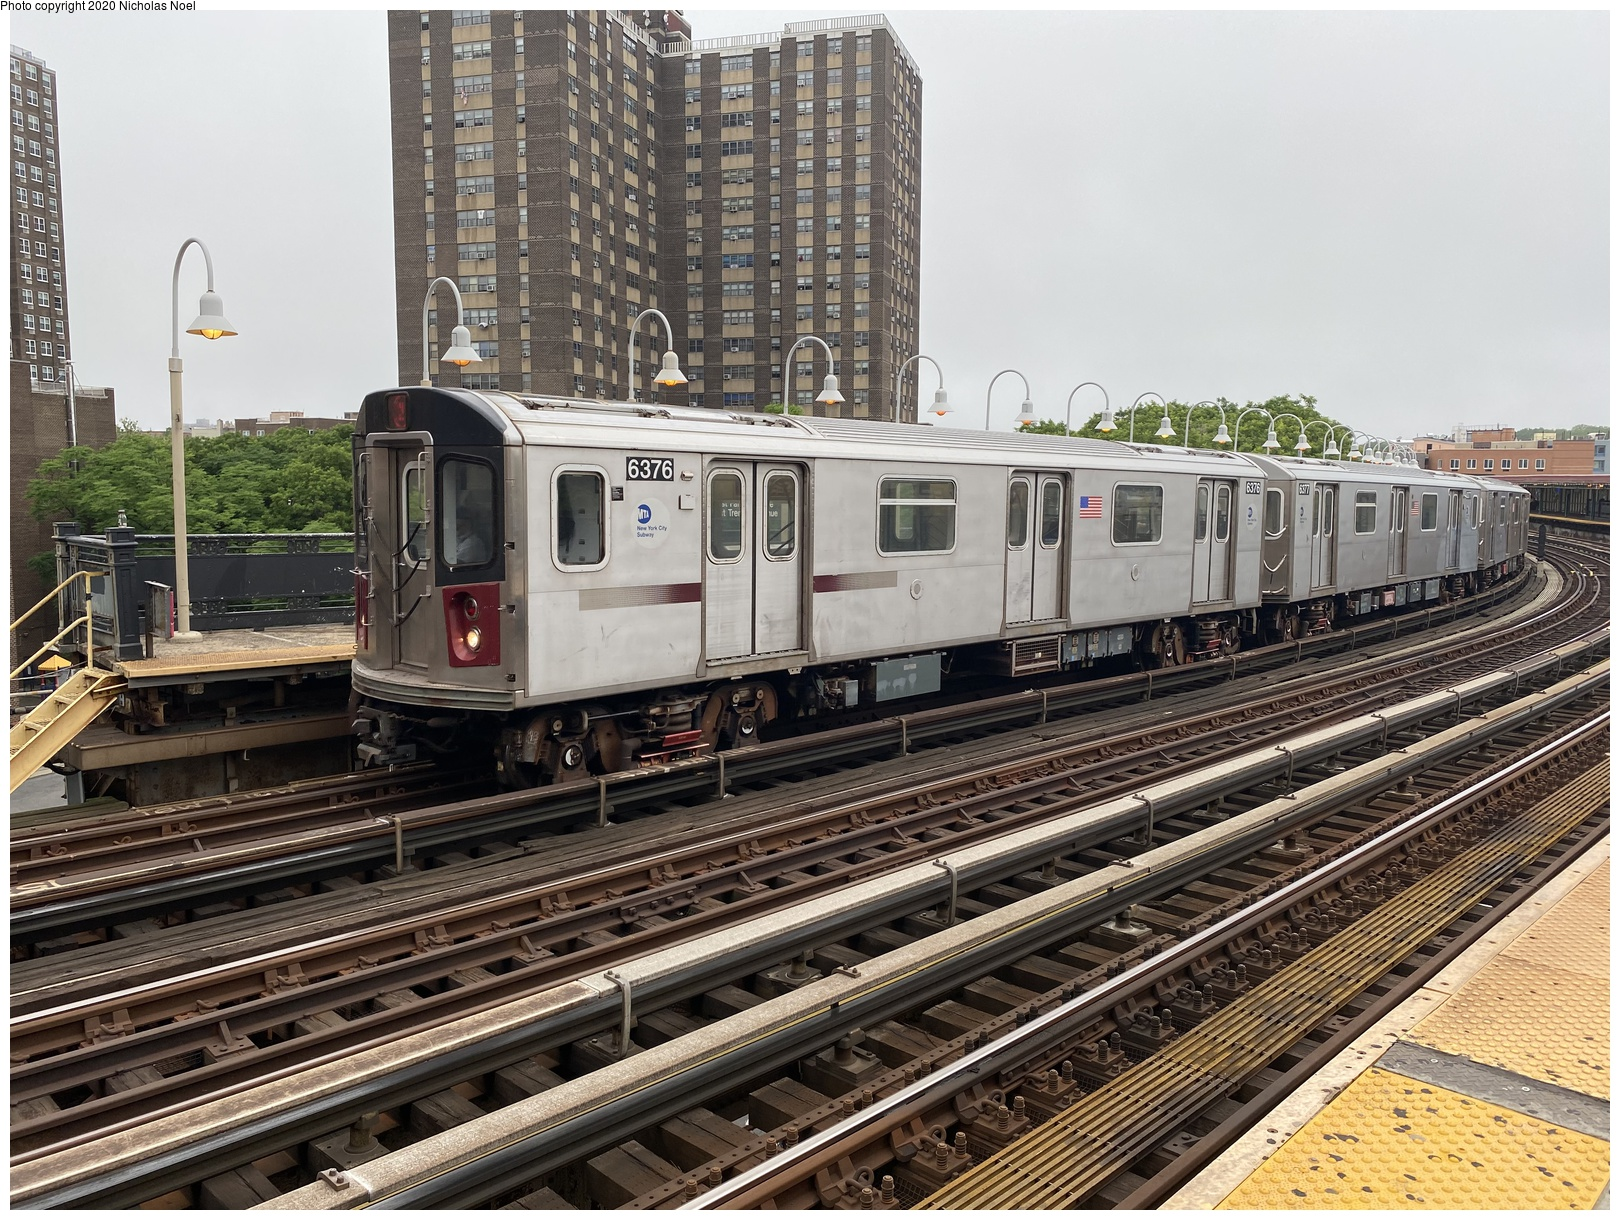 (188k, 1044x727)<br><b>Country:</b> United States<br><b>City:</b> New York<br><b>System:</b> New York City Transit<br><b>Line:</b> BMT West End Line<br><b>Location:</b> Bay 50th Street <br><b>Car:</b> BMT D-Type Triplex 6077 <br><b>Photo by:</b> Joel Shanus<br><b>Viewed (this week/total):</b> 2 / 2367